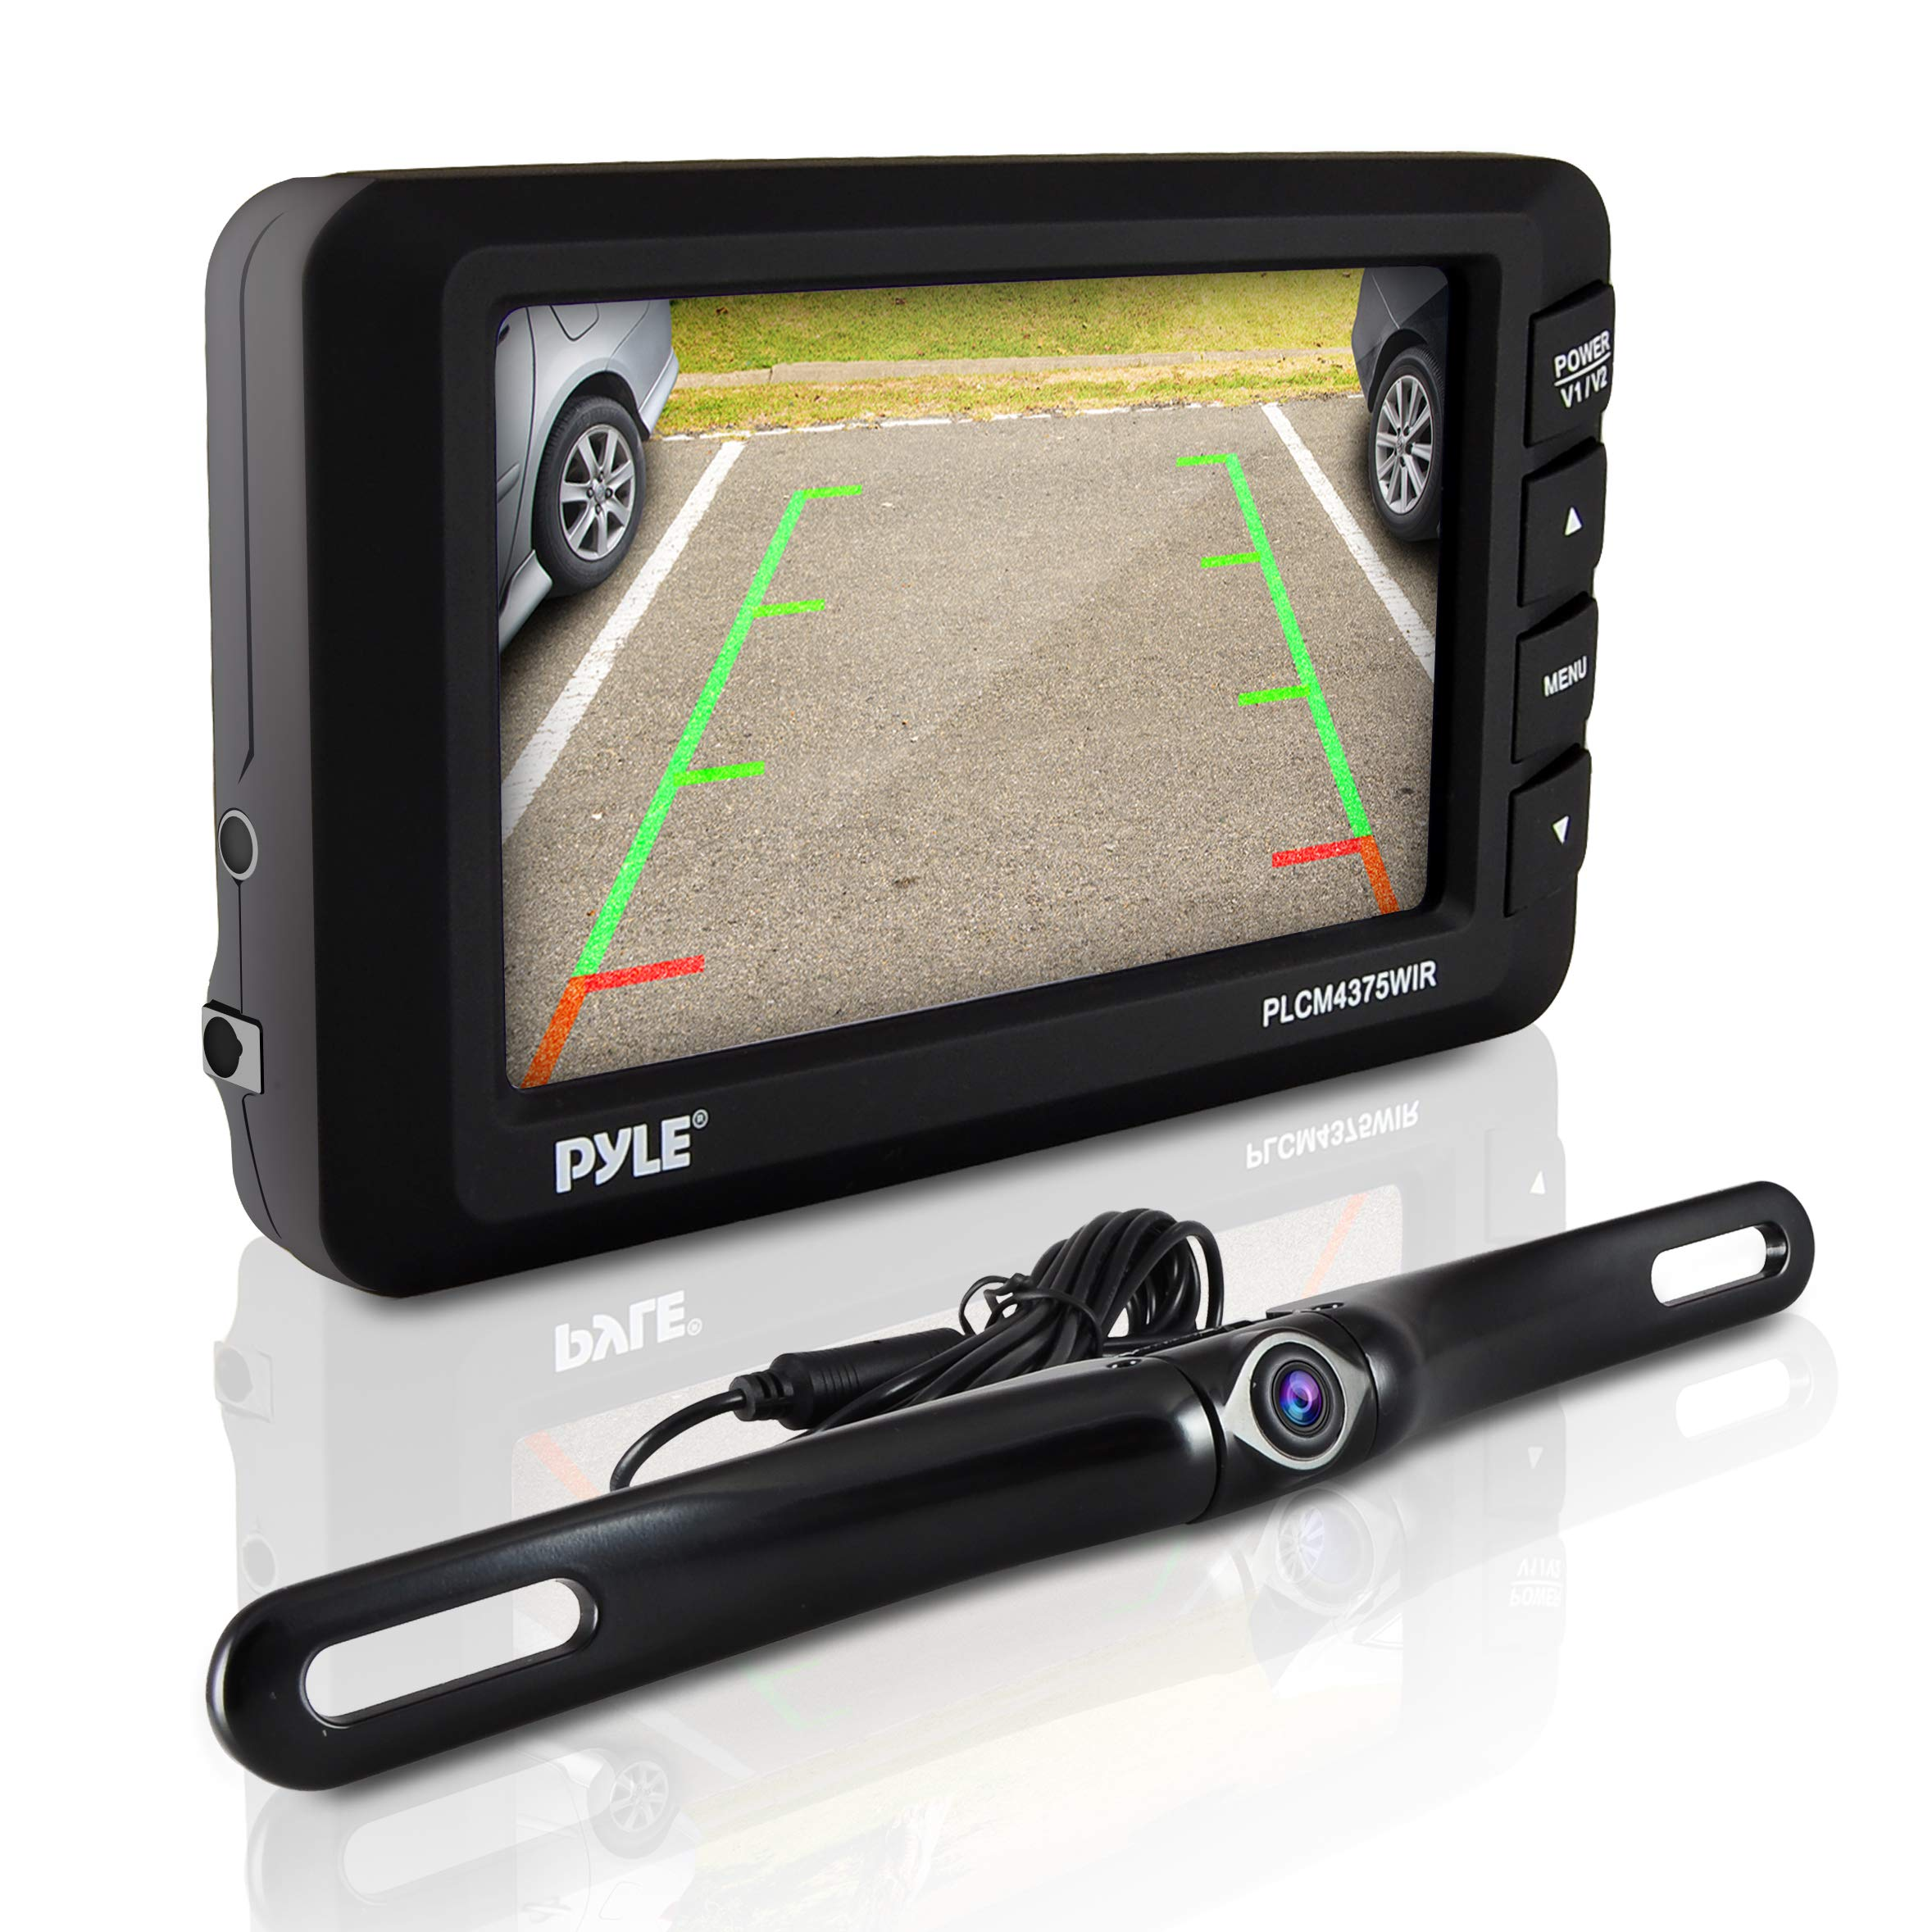 Wireless Rear View Backup Camera - Car Parking Rearview Monitor System and Reverse Safety w/Distance Scale Lines, Waterproof, Night Vision, 4.3'' LCD Screen, Video Color Display for Vehicles - Pyle by Pyle